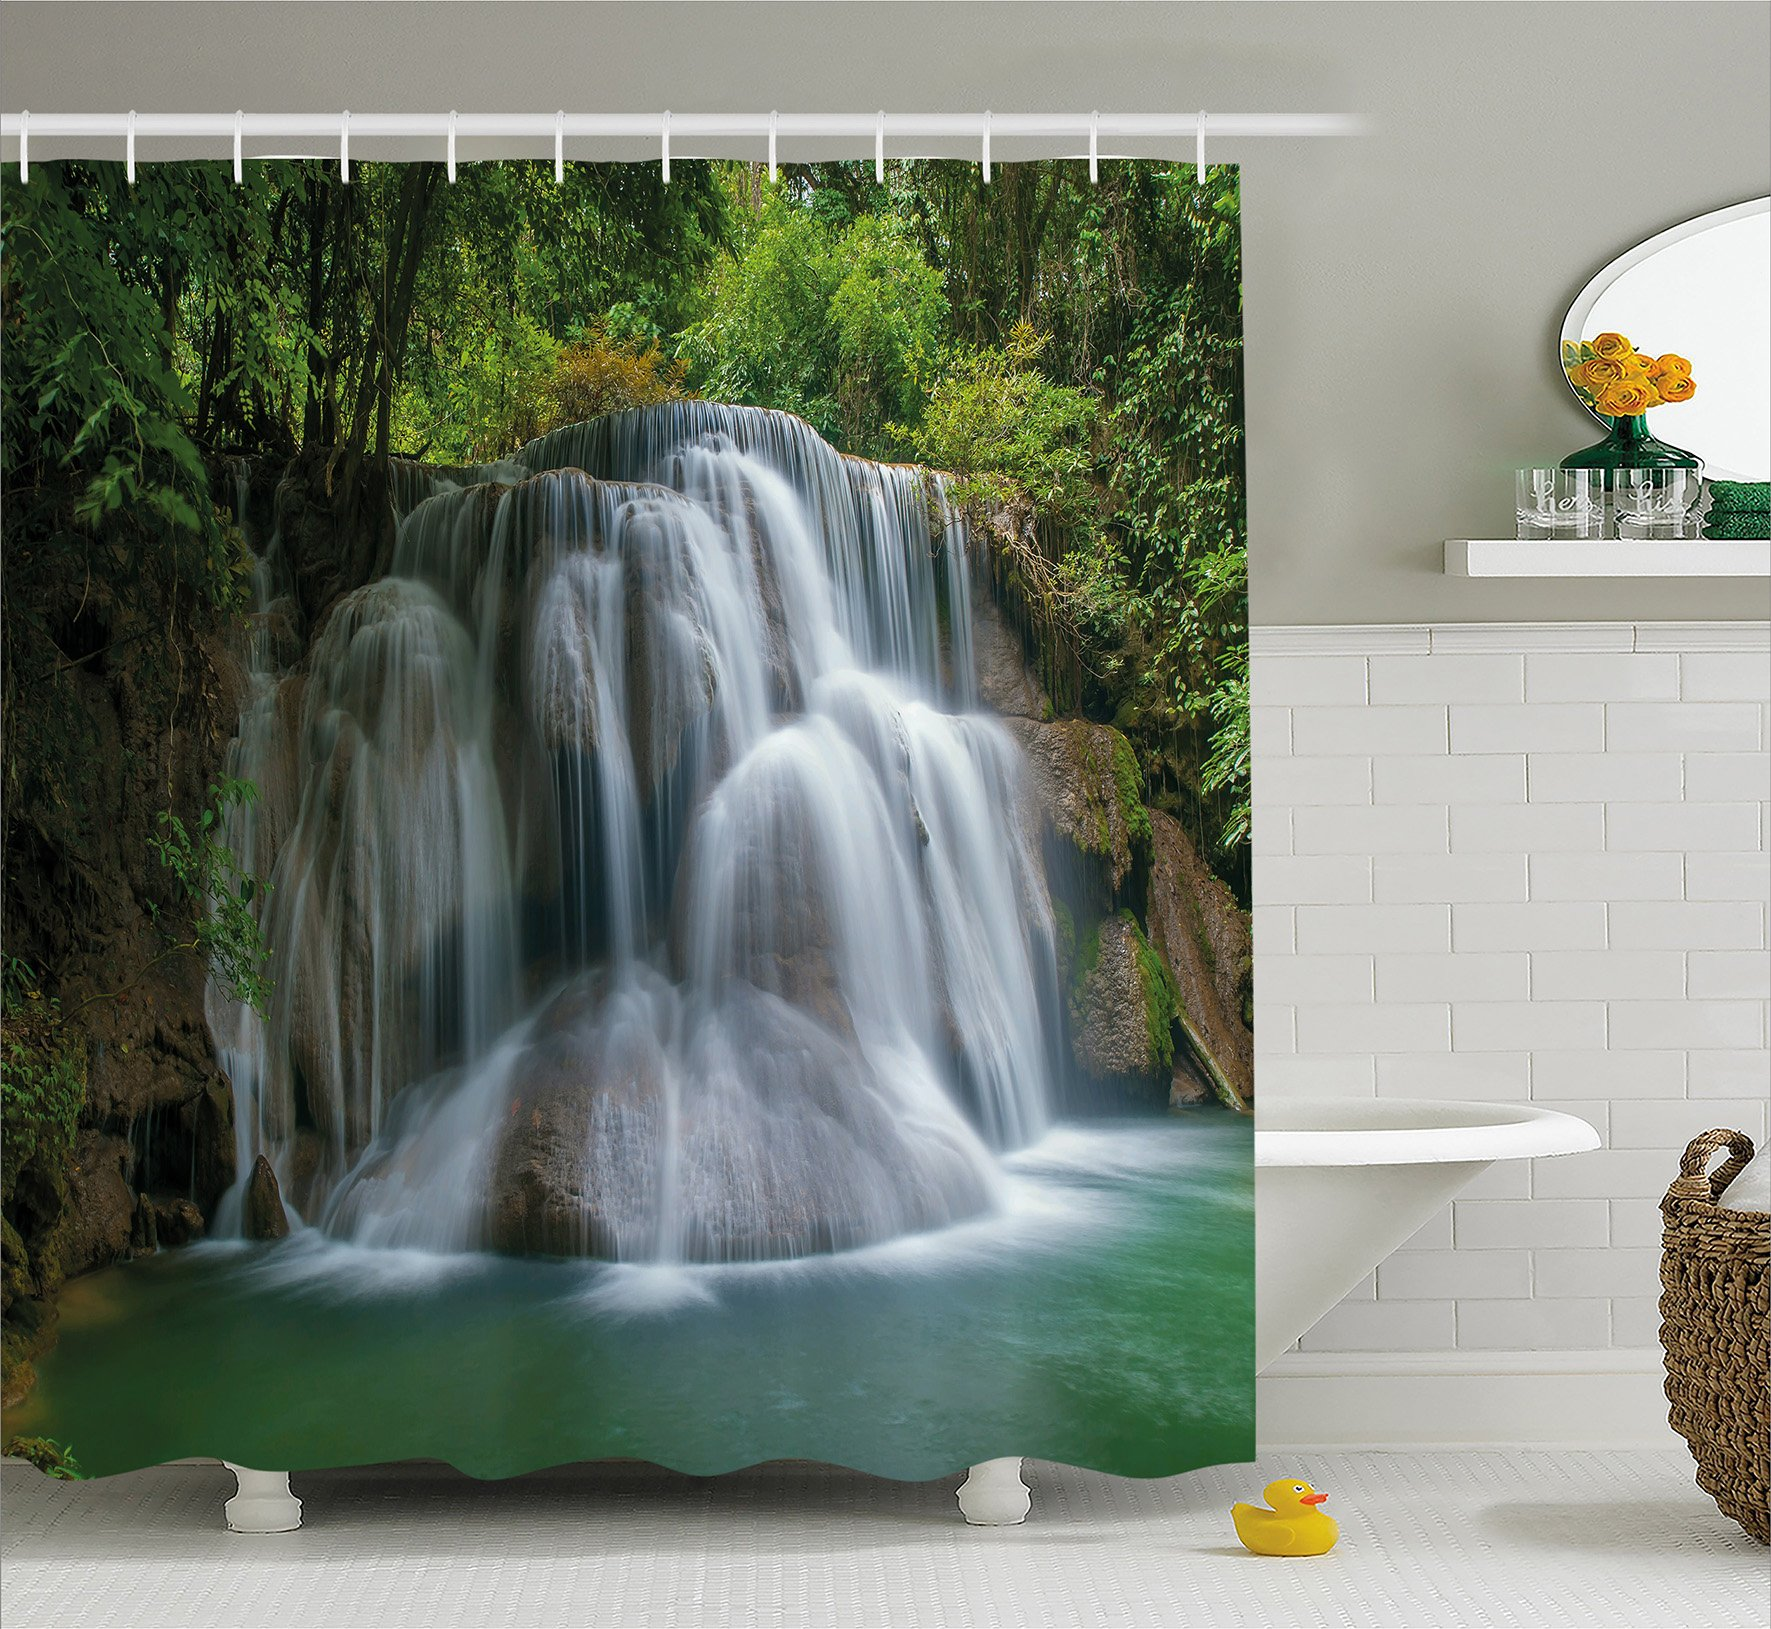 Ambesonne Waterfall Decor Shower Curtain by, Building like Massive Waterfall with Green Thai Exotic Bushes each side Artwork, Fabric Bathroom Decor Set with Hooks, 84 Inches Extra Long, Green